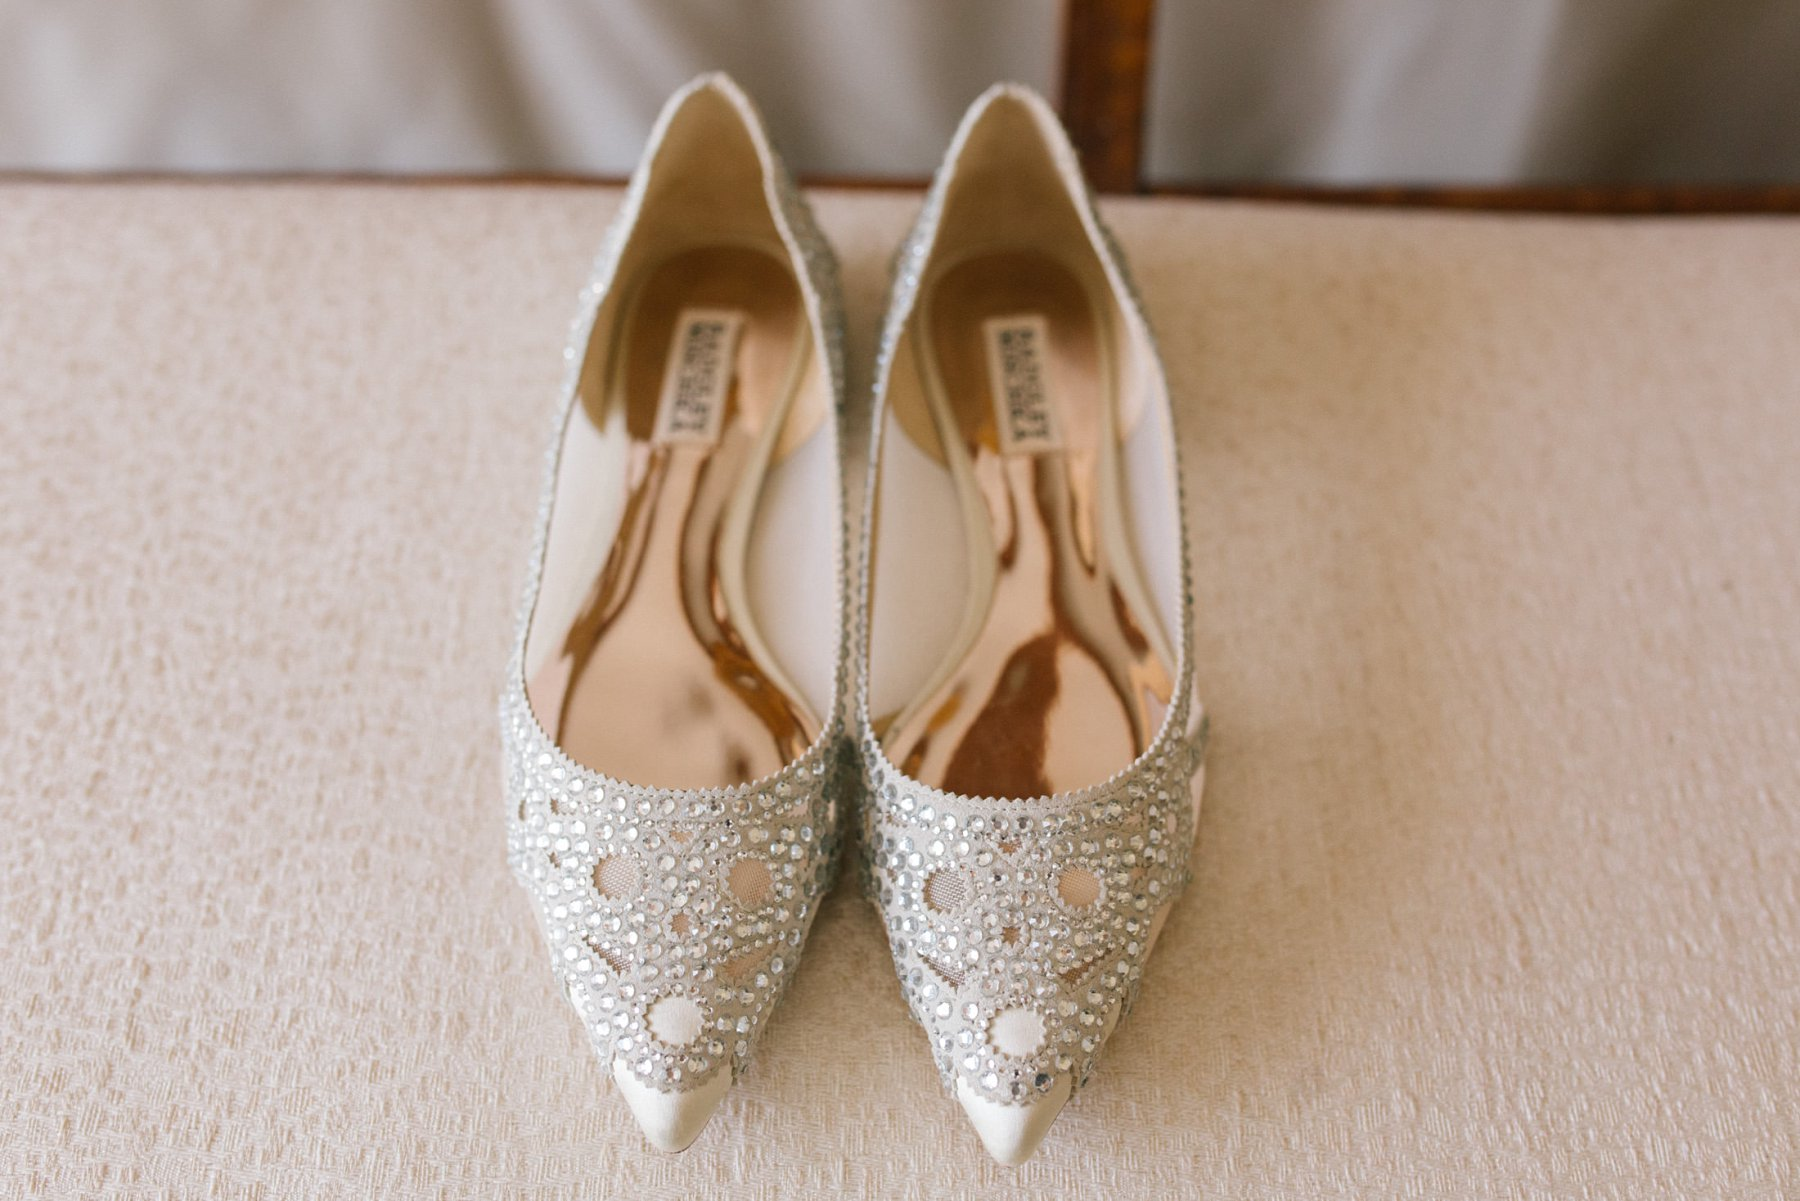 Badgley Mischka Gigi flats wedding shoes Arizona wedding